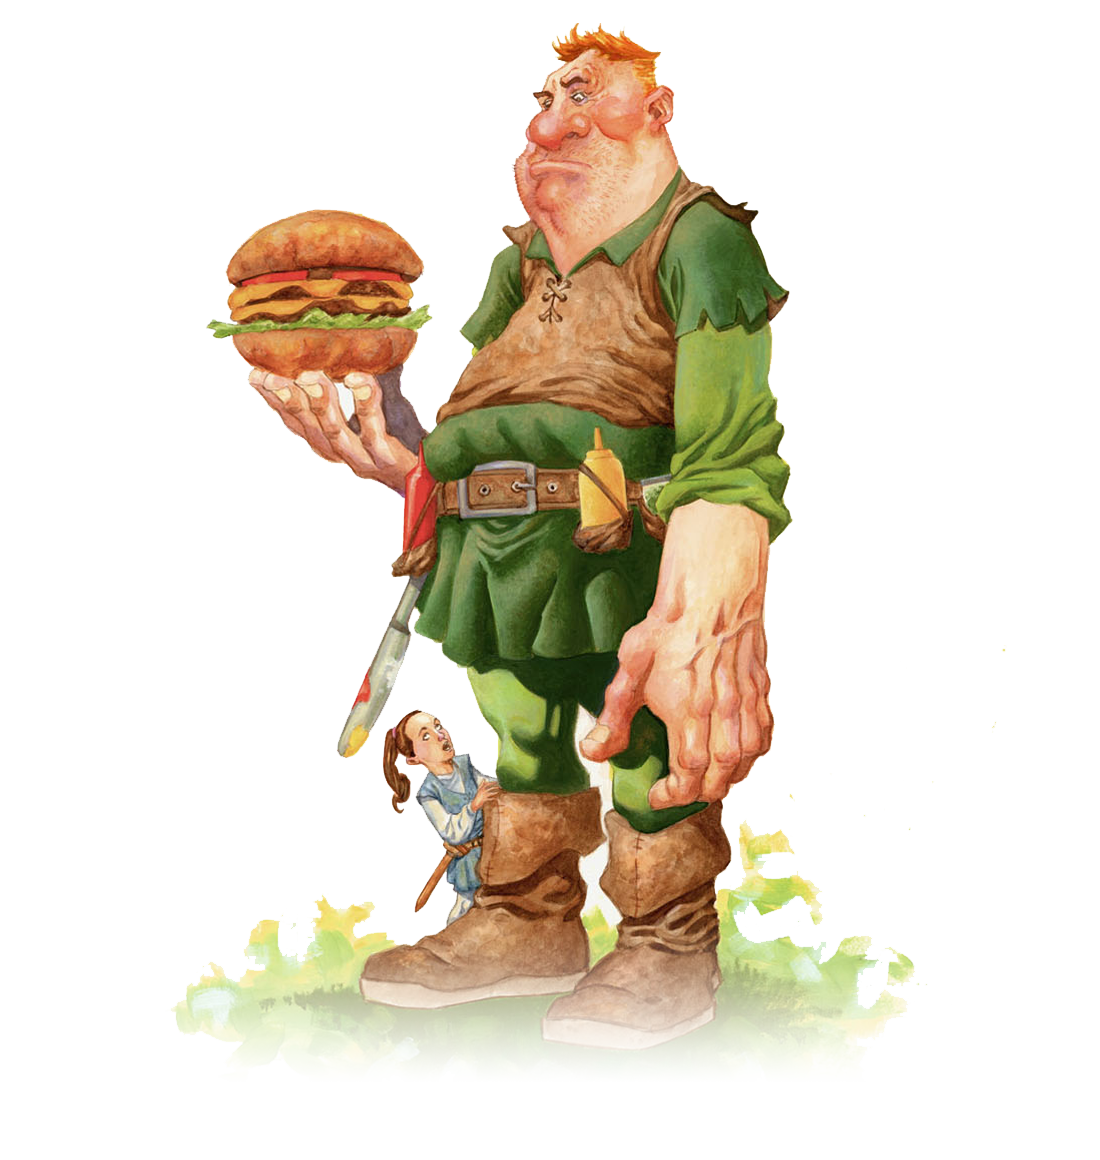 Hamburger Giant